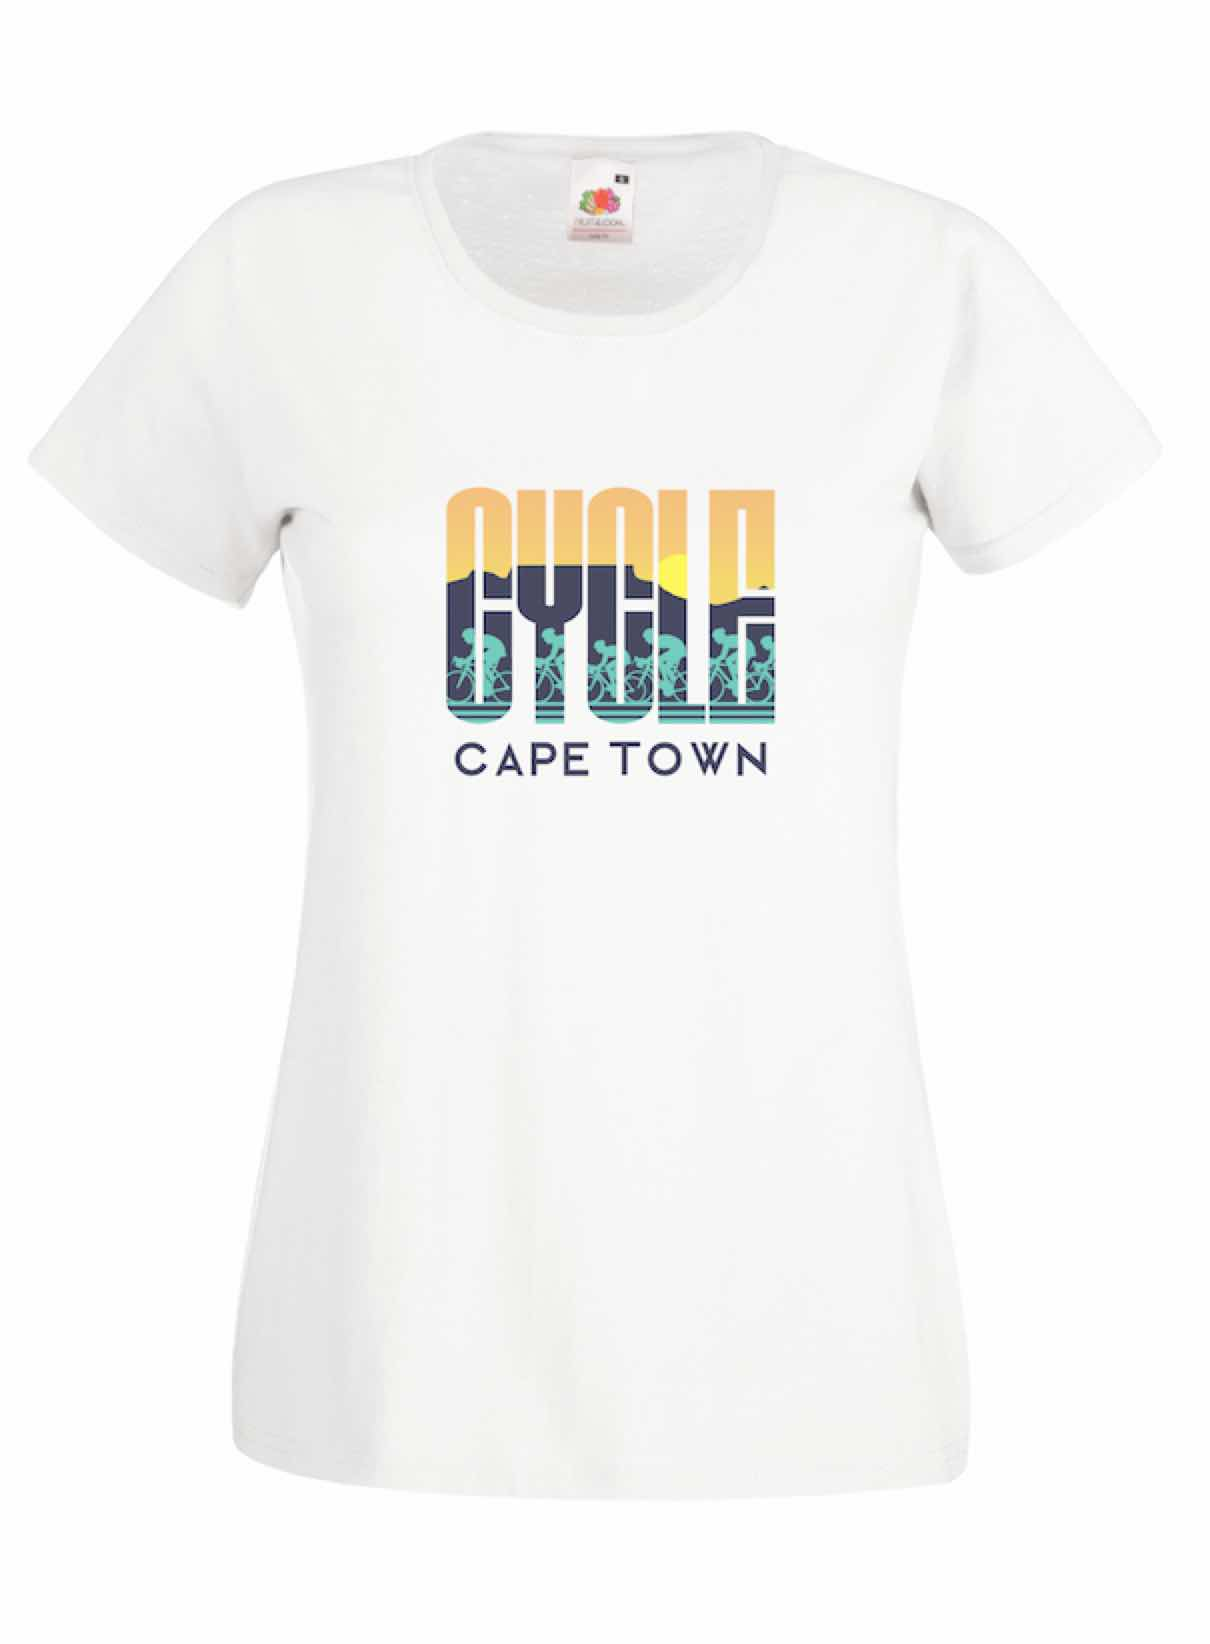 Cycle Cape Town design for t-shirt, hoodie & sweatshirt